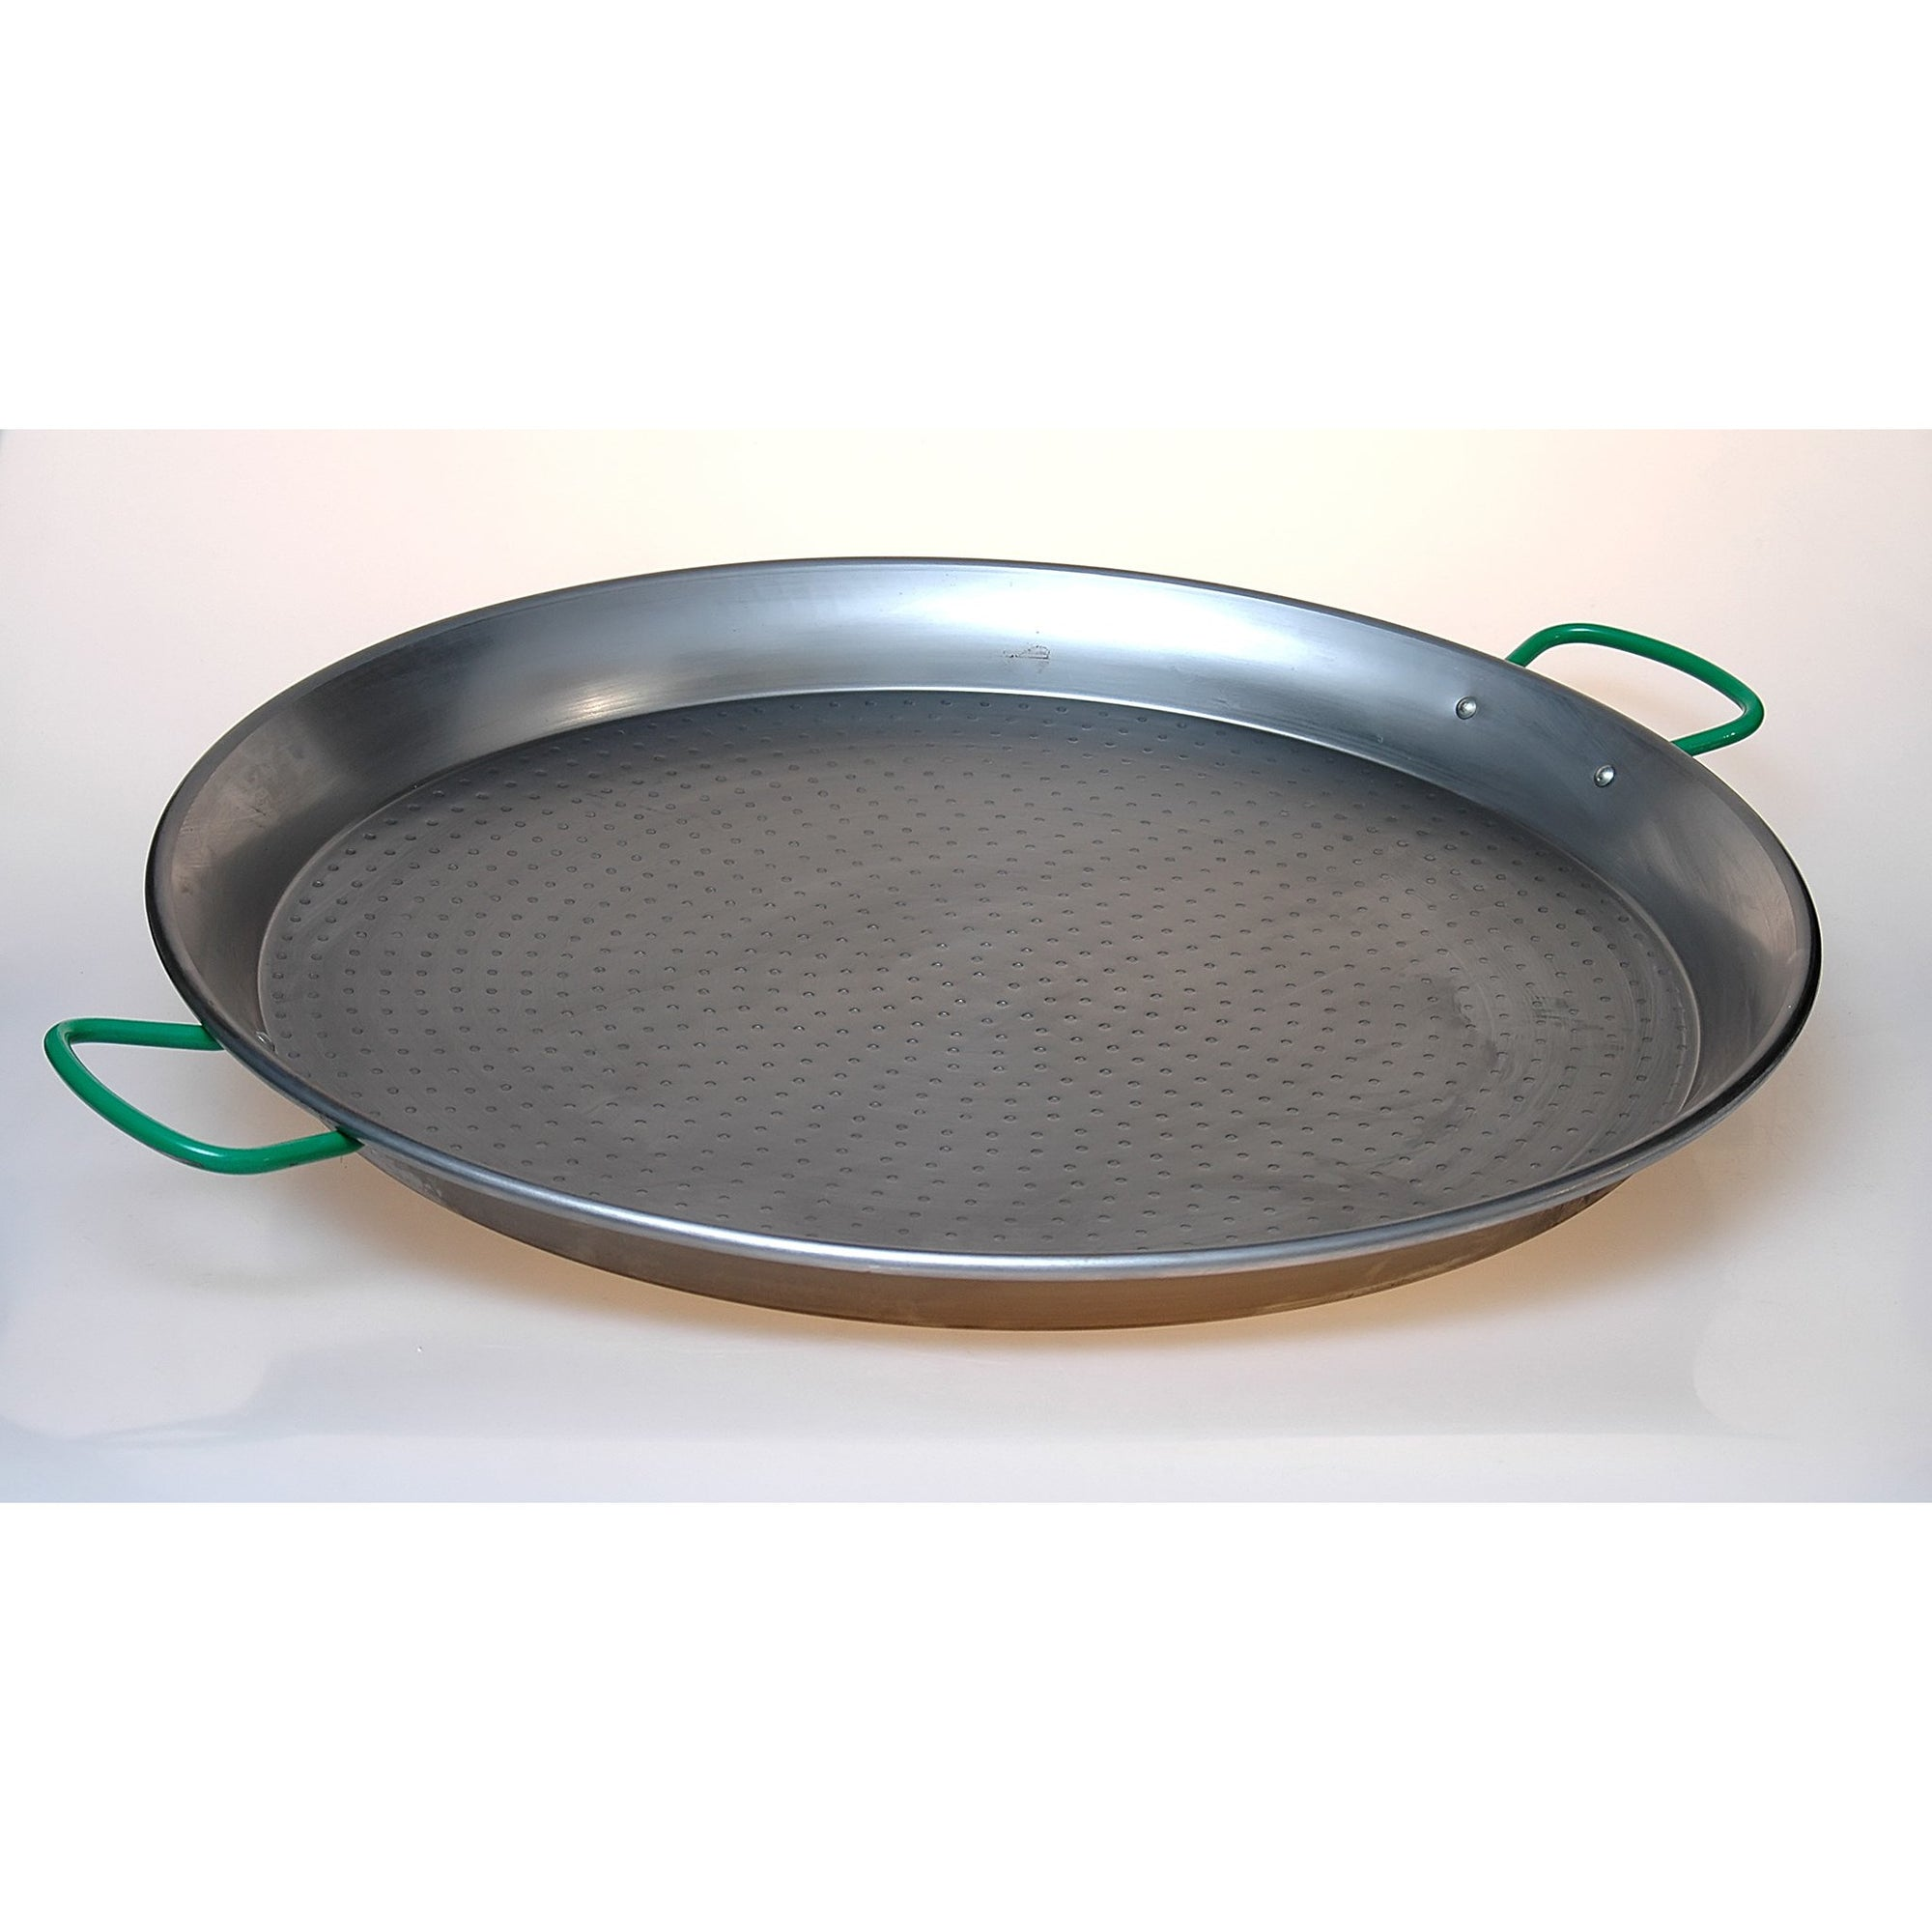 Feurio Frying Pan - Outdoor Living Essentials